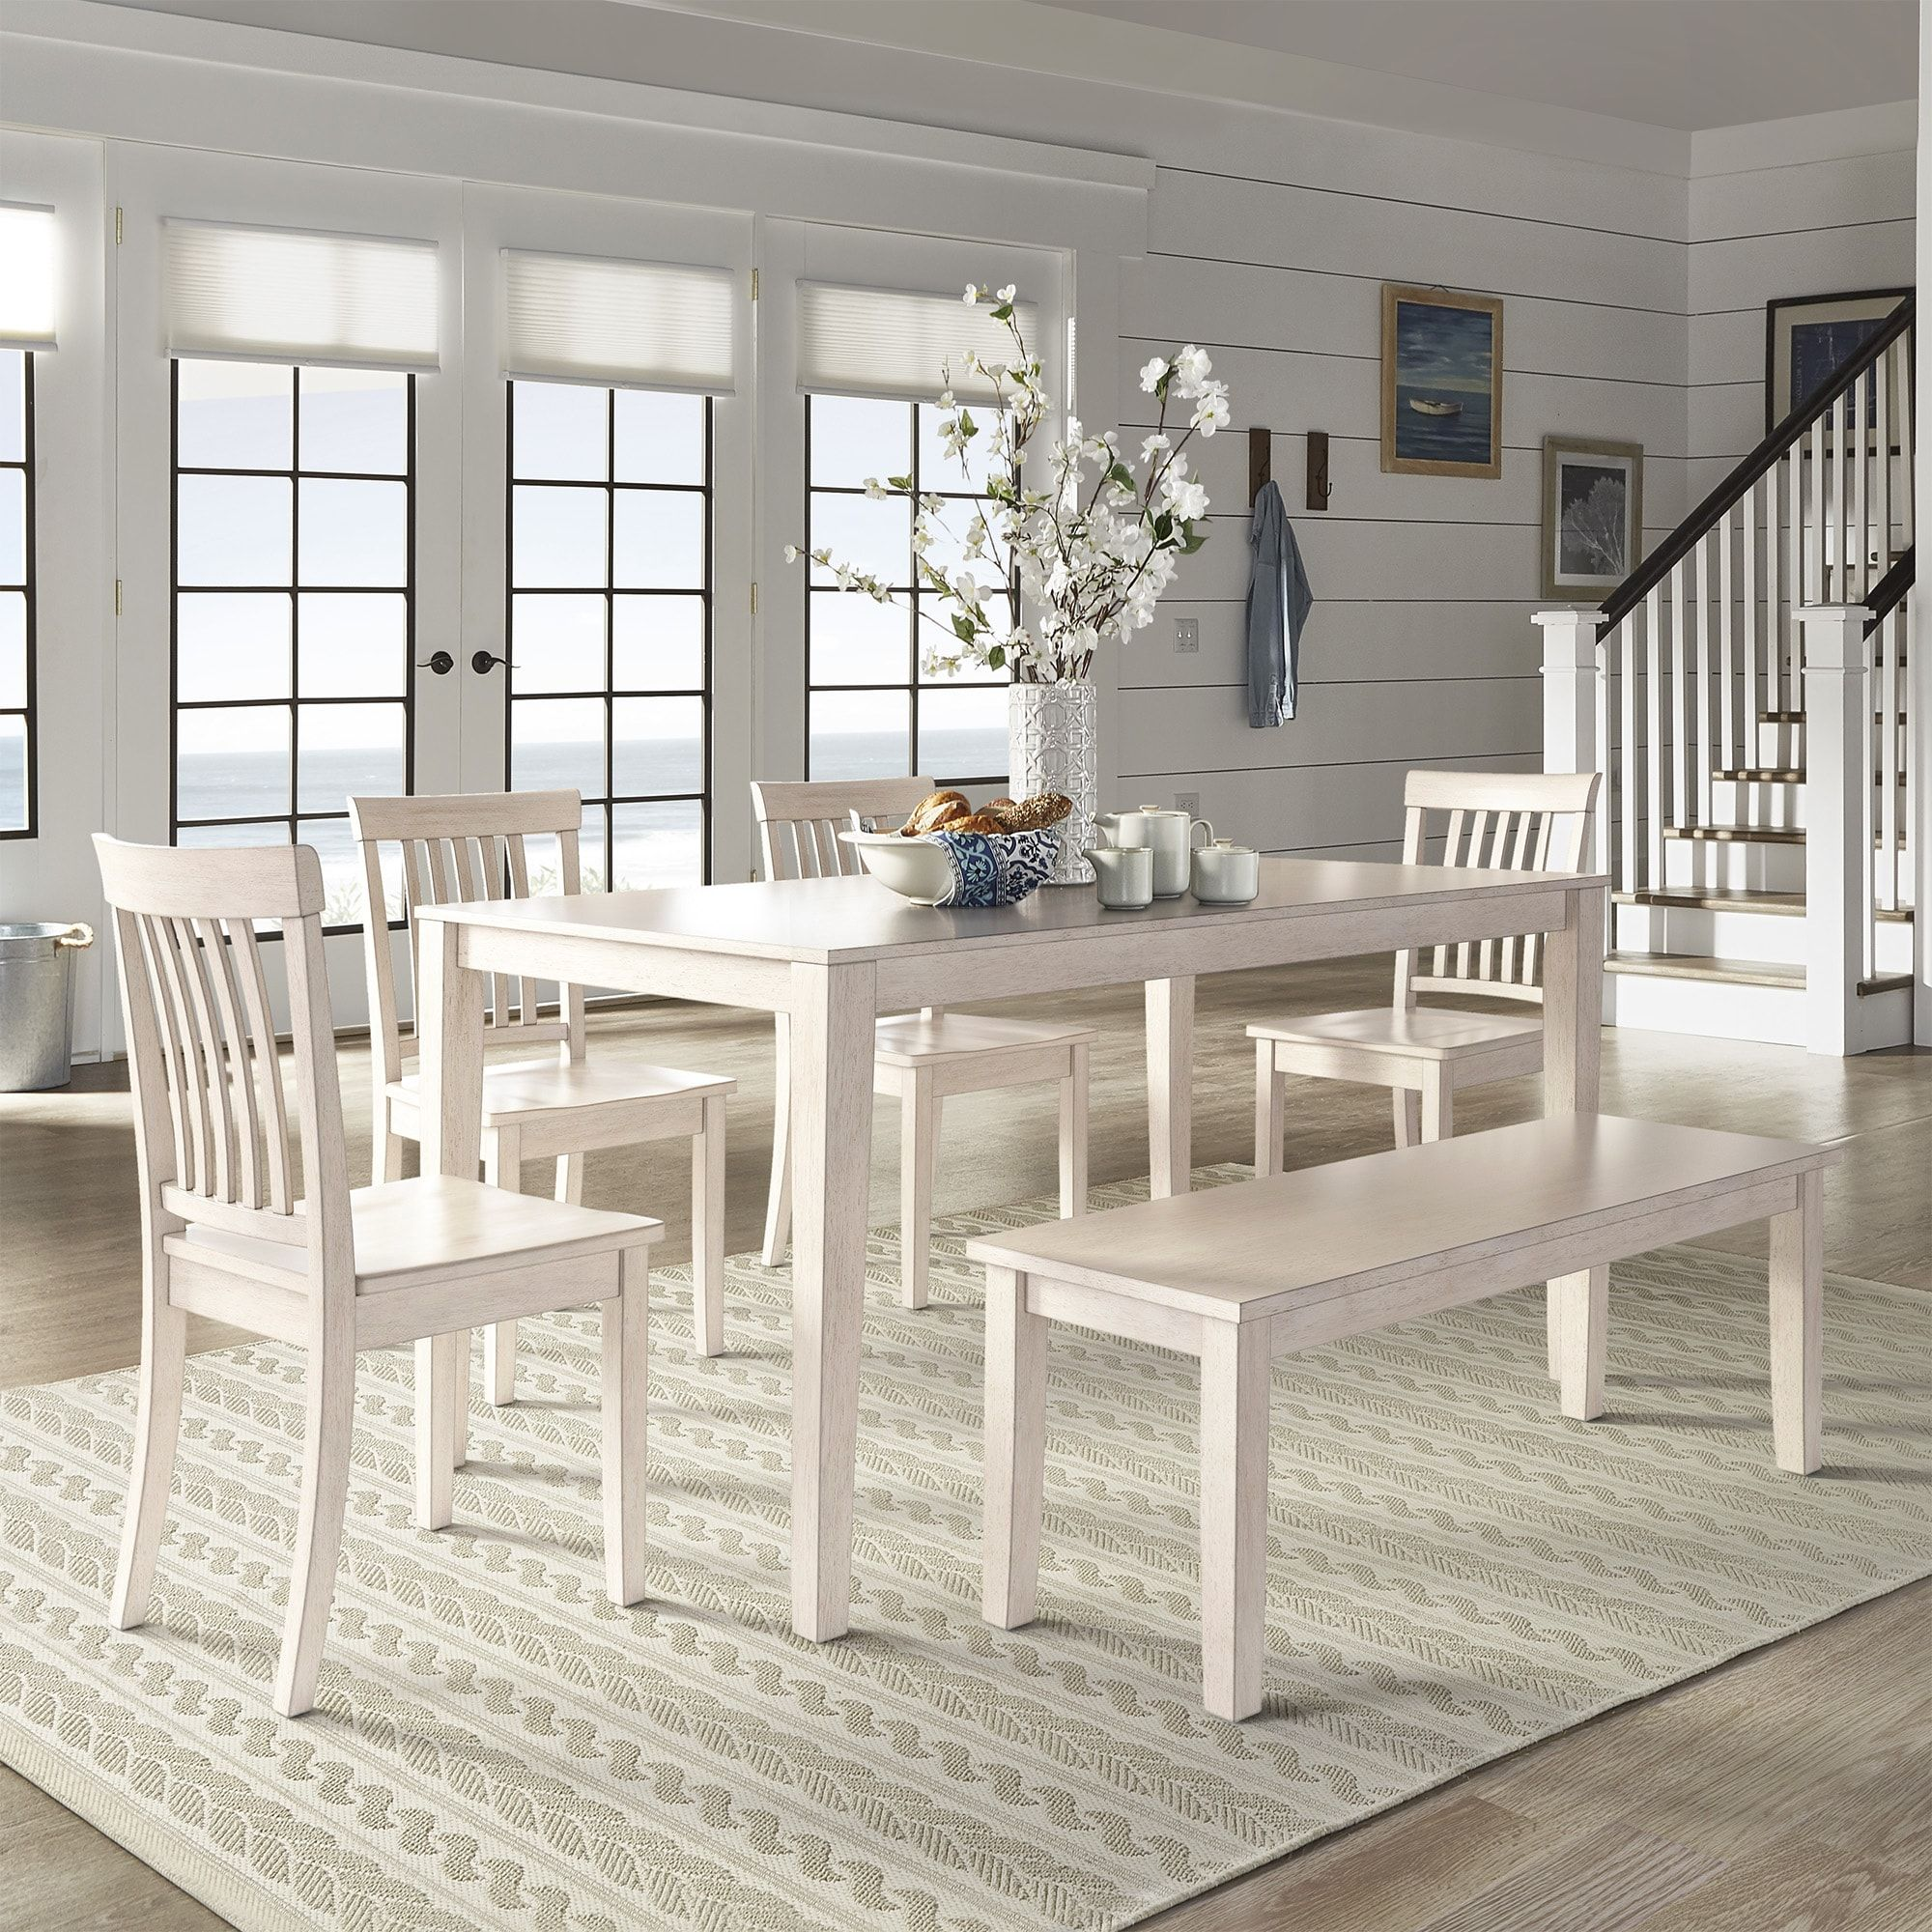 Wilmington Ii 60Inch Rectangular Antique White Dining Set Simple Off White Dining Room Furniture Design Inspiration